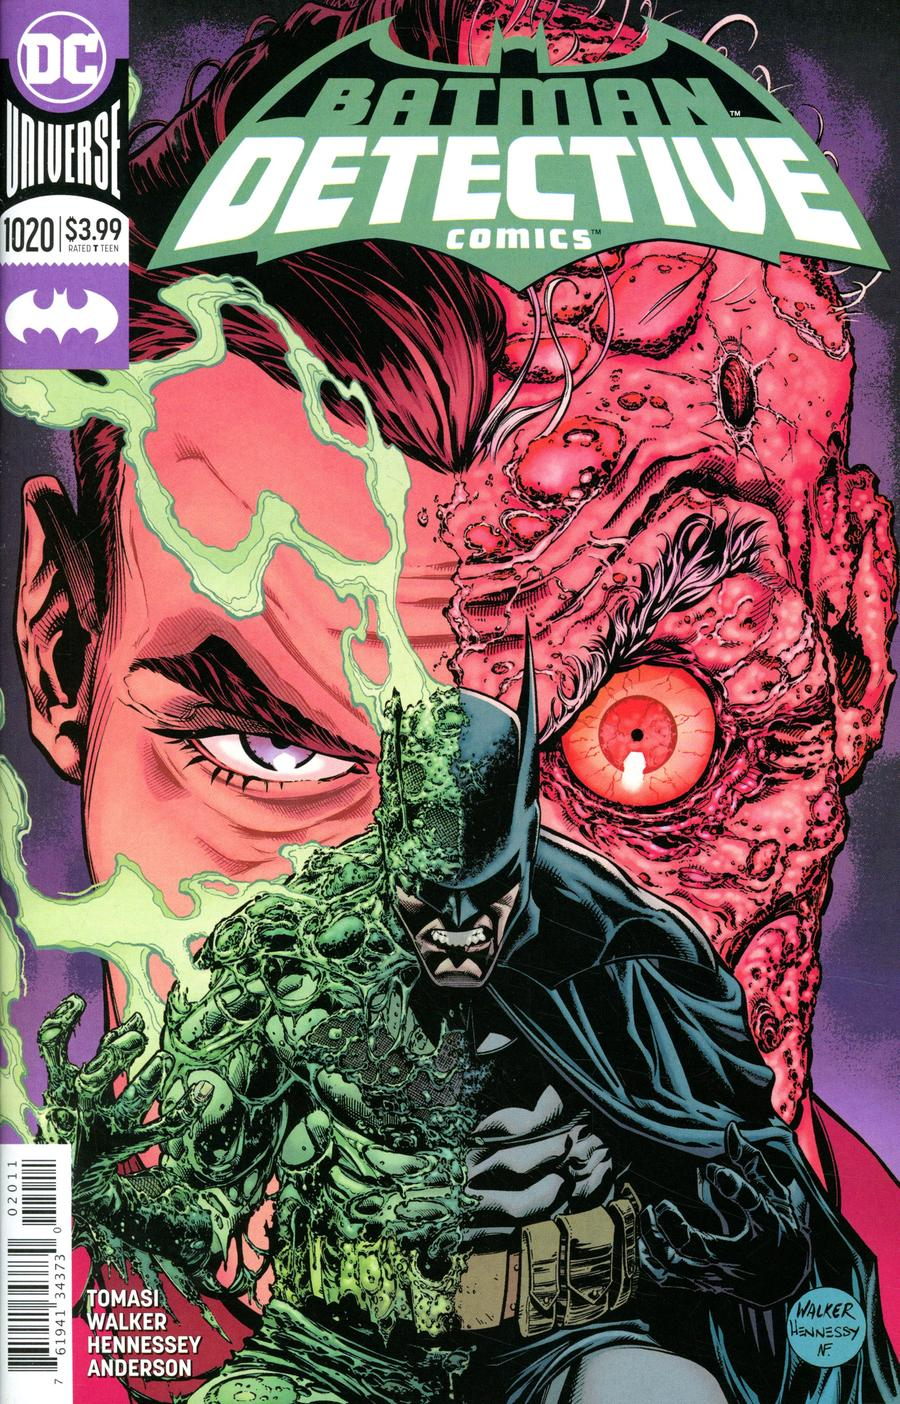 Detective Comics Vol 2 #1020 Cover A Regular Brad Walker & Andrew Hennessy Cover